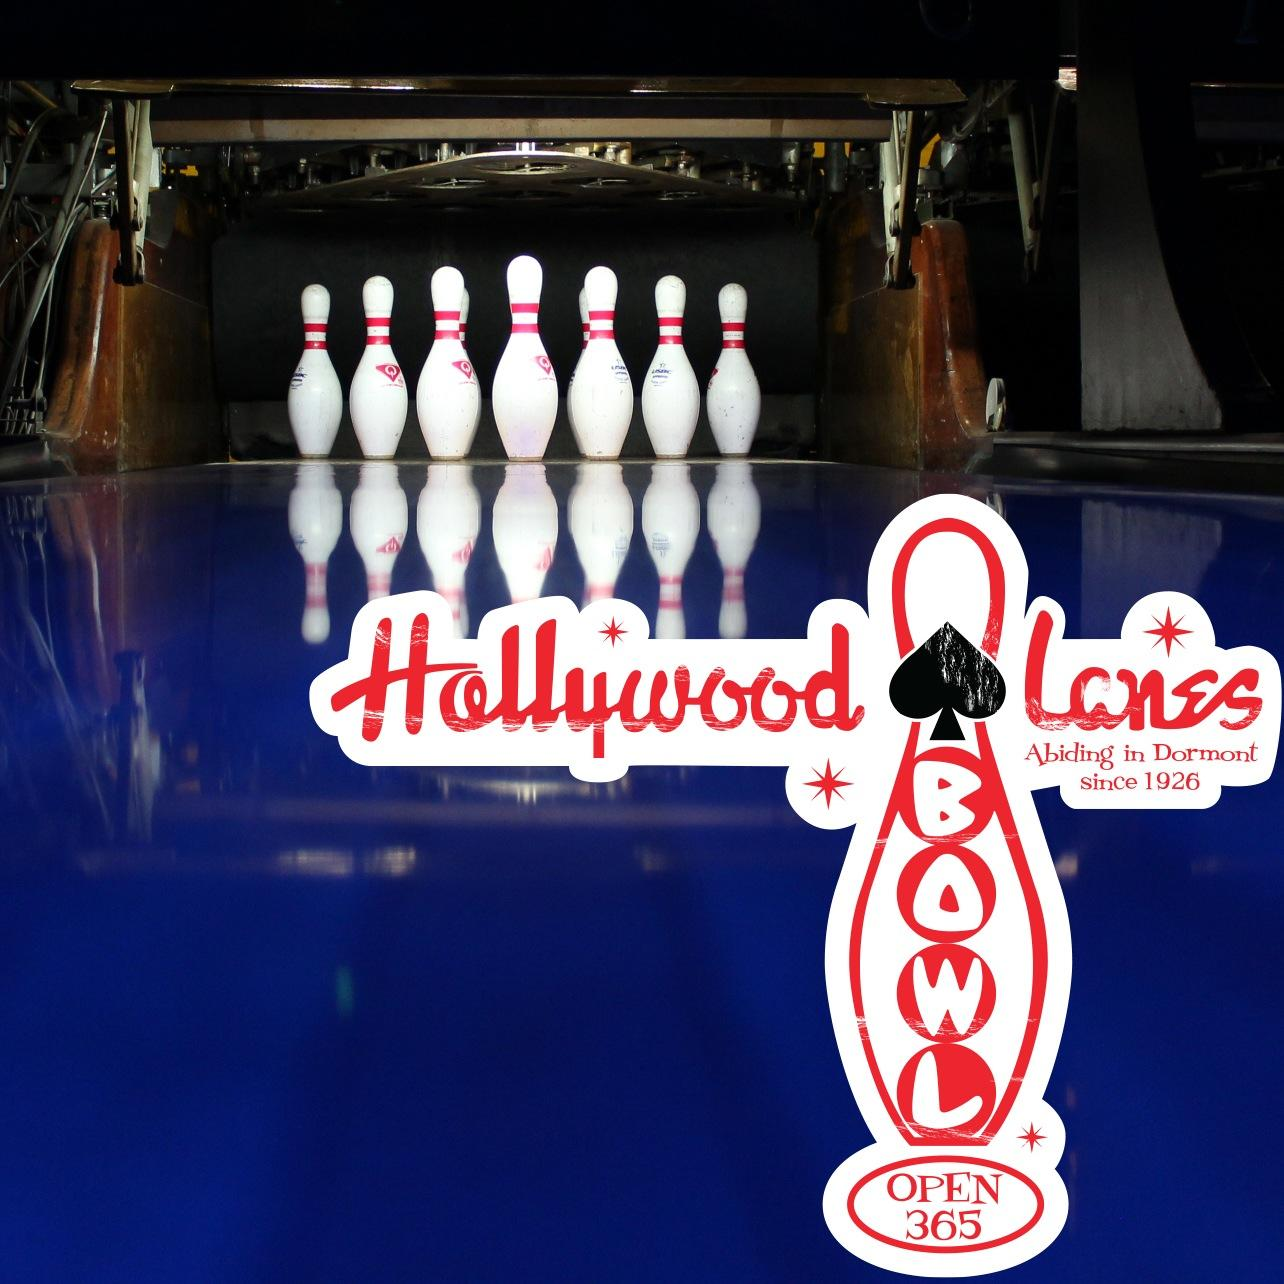 Hollywood Lanes on Twitter: